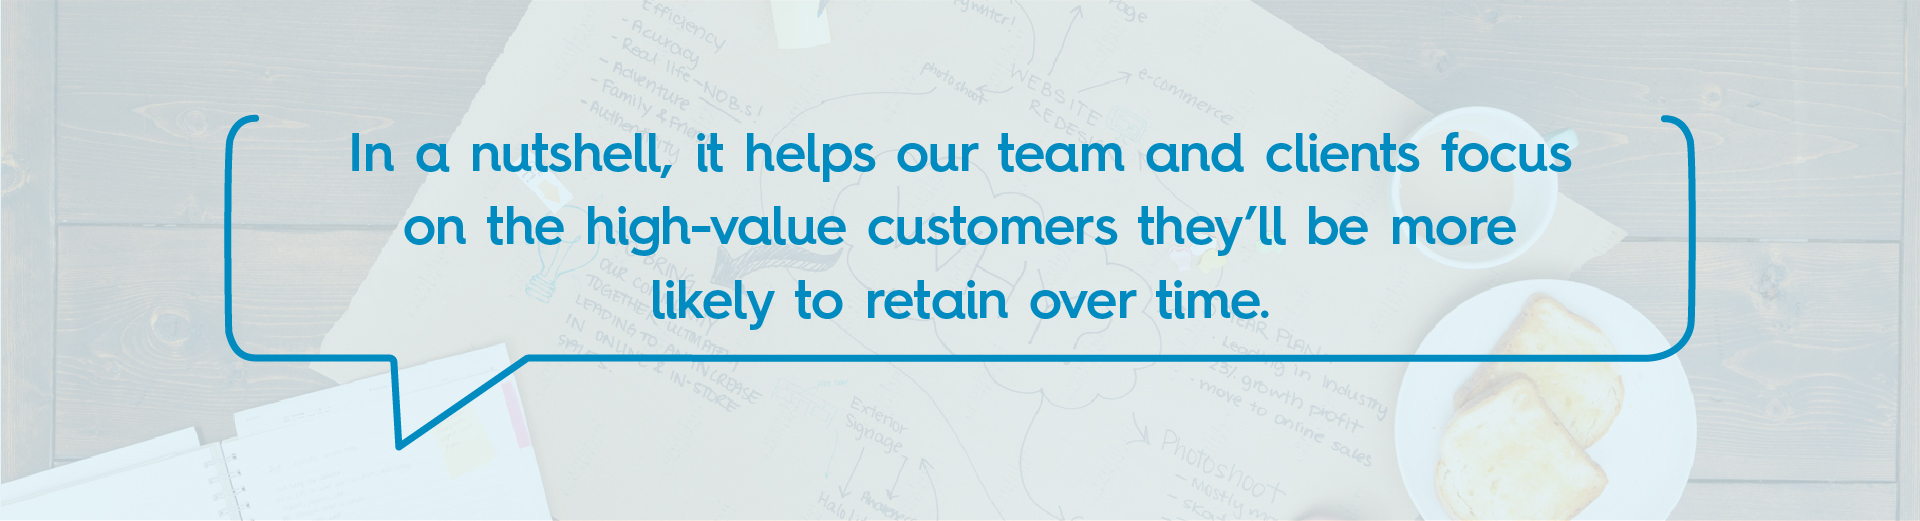 In a nutshell, it helps our team and clients focus on the high-value customers they'll be more likely to retain over time.